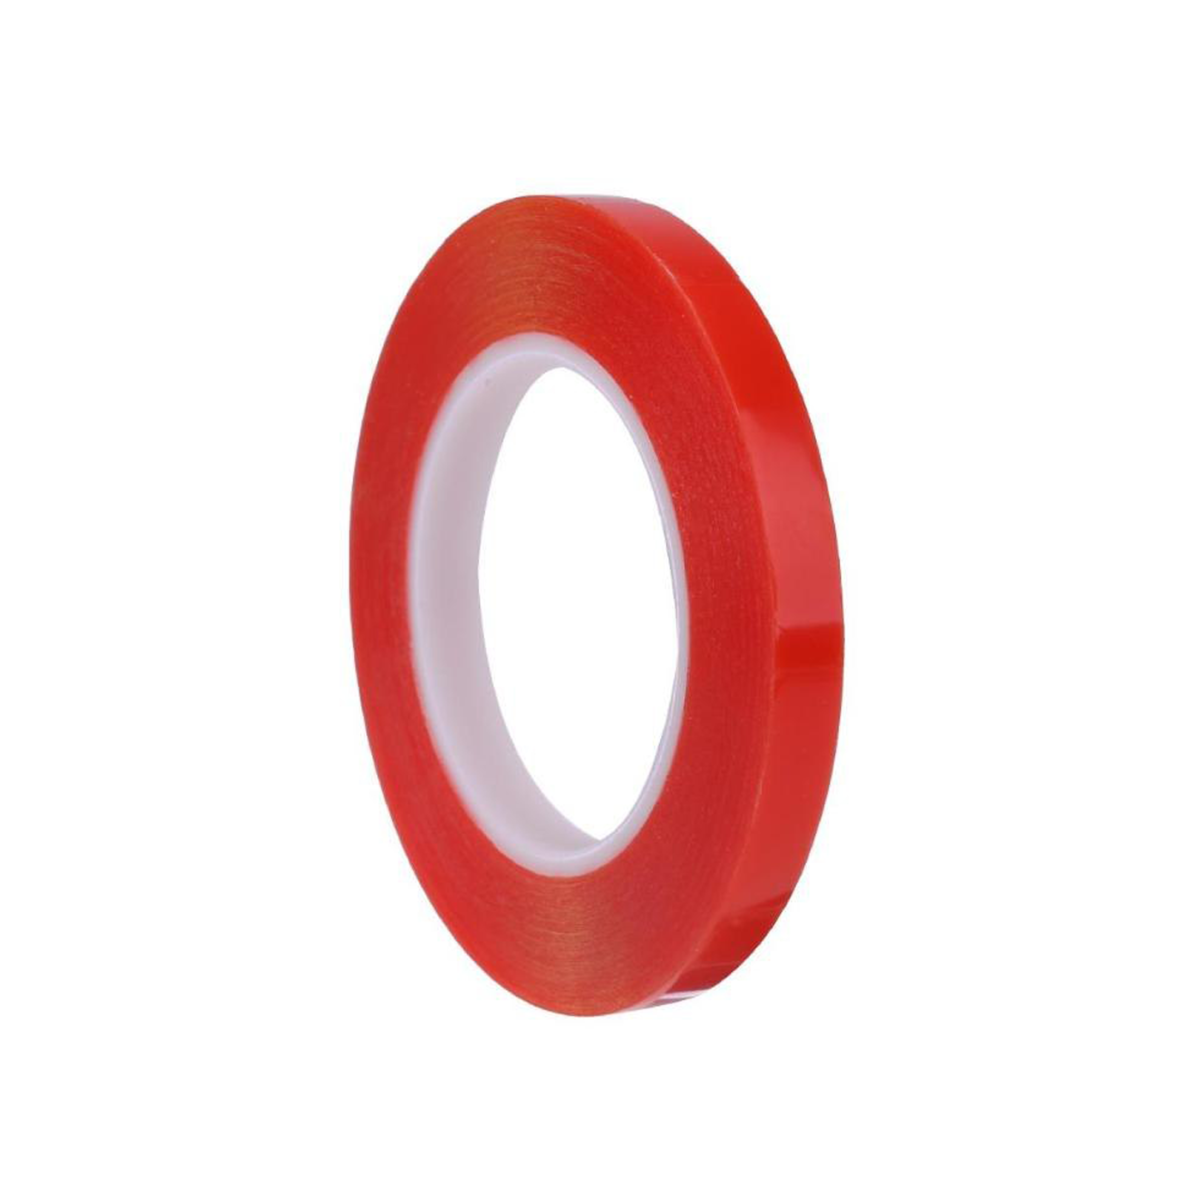 Tacky Tape- 12mm